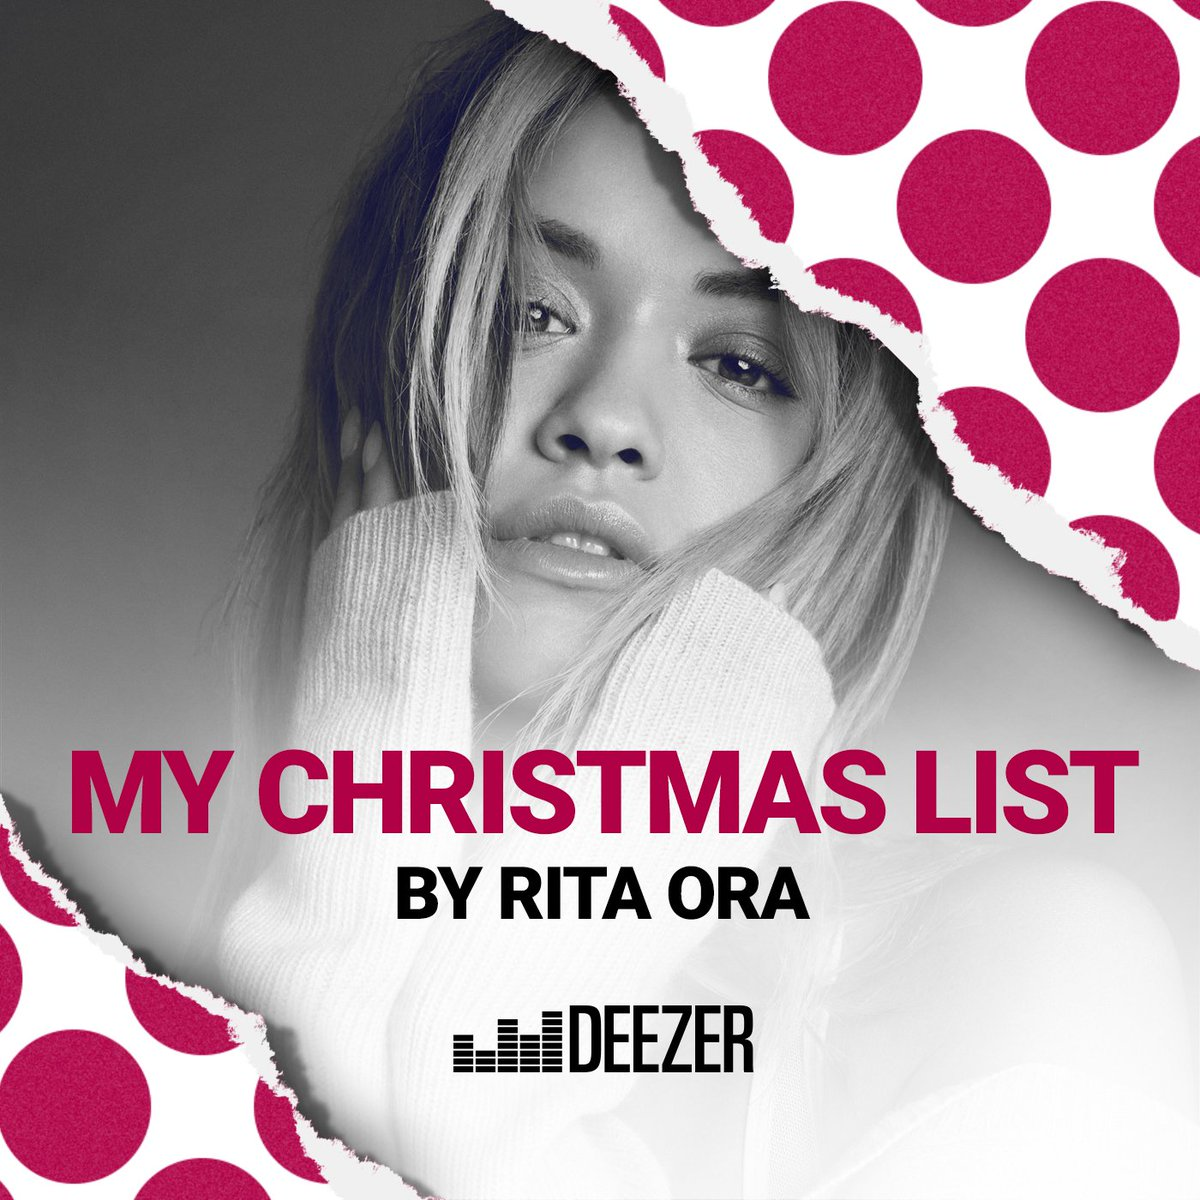 RT @Deezer: Get in the festive mood with @RitaOra's 'Christmas List' ???? ▶️ https://t.co/WnVZFAaXpV #ChristmasEve https://t.co/33tXYkidIL